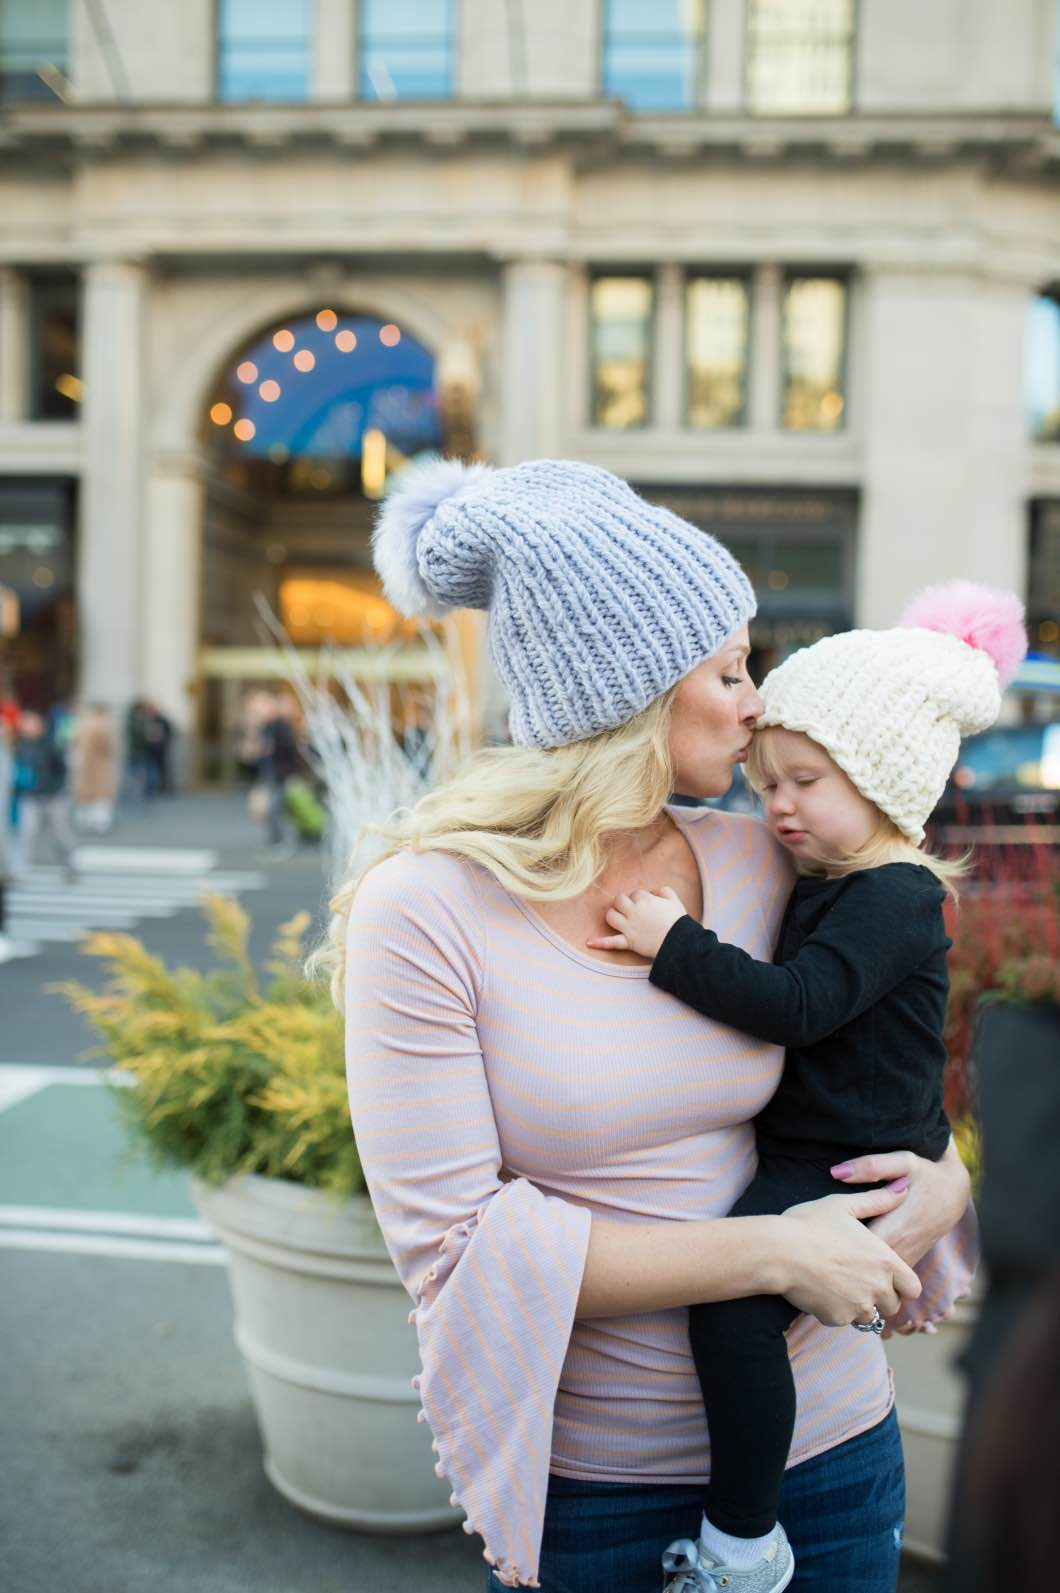 The Perfect Gift for Mom this Holiday Season by Atlanta style blogger Happily Hughes